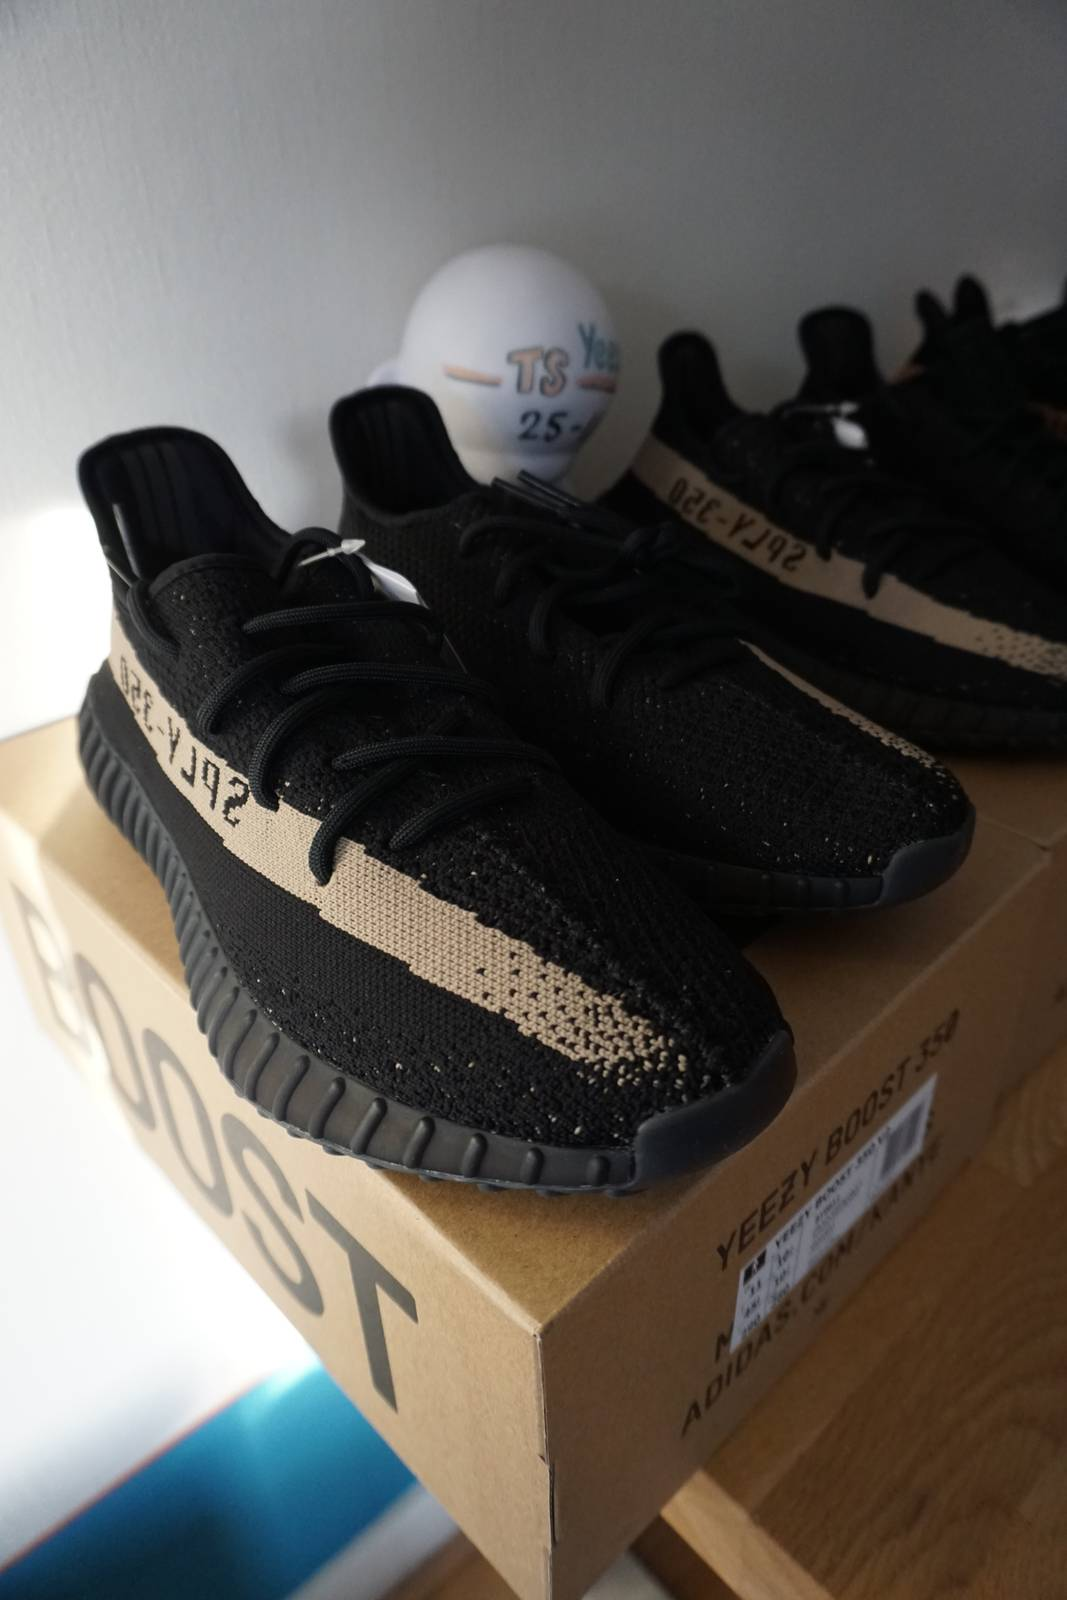 Authentic Adidas Yeezy 350 V2 Blade Black Review AB Totaal